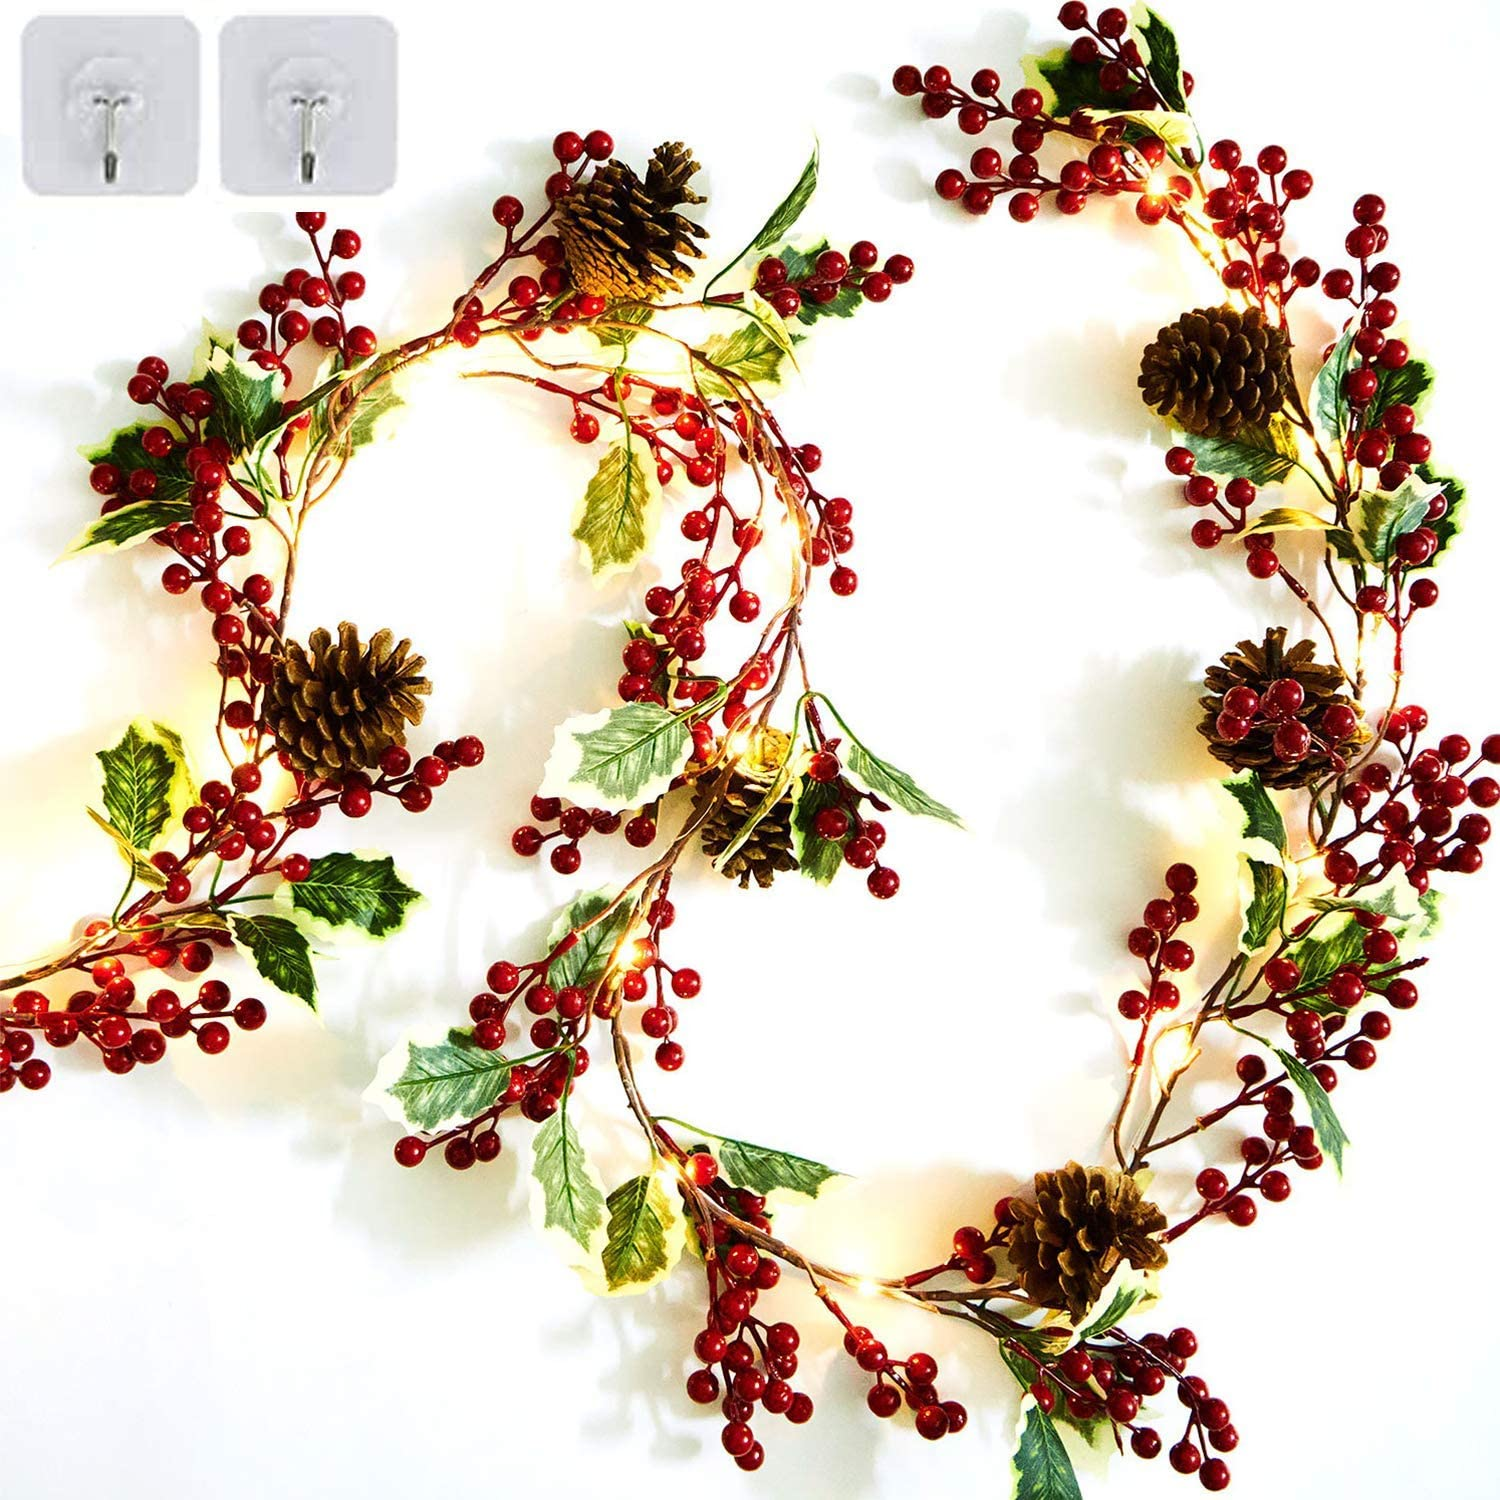 6.5FT Red Berry Christmas Garland Preload 20 Warm Decor Christmas Indoor Outdoor Artificial Garland with Pine Cone and Green Leaves Decor Home Fireplace Stairs Table Winter Holiday (Red-B)